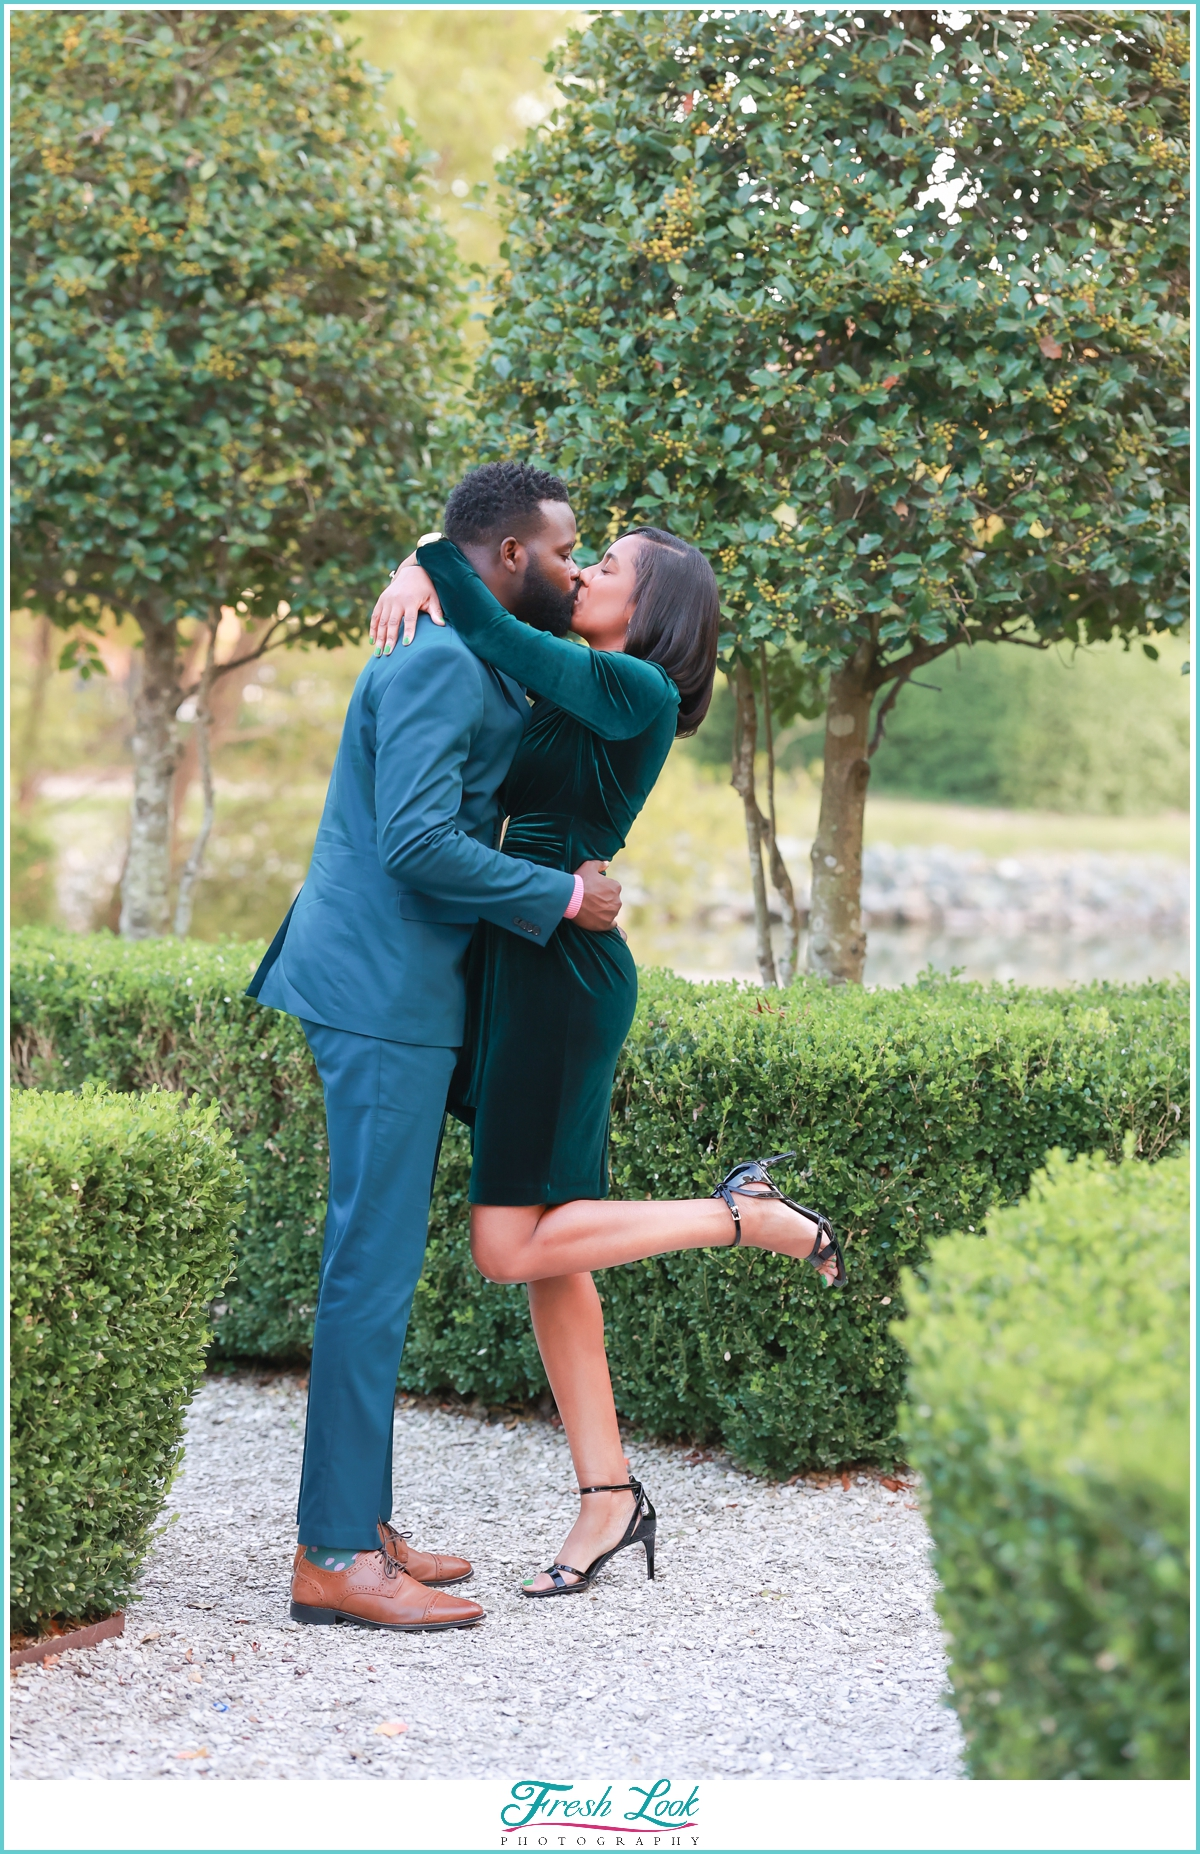 romantic kiss at engagement session